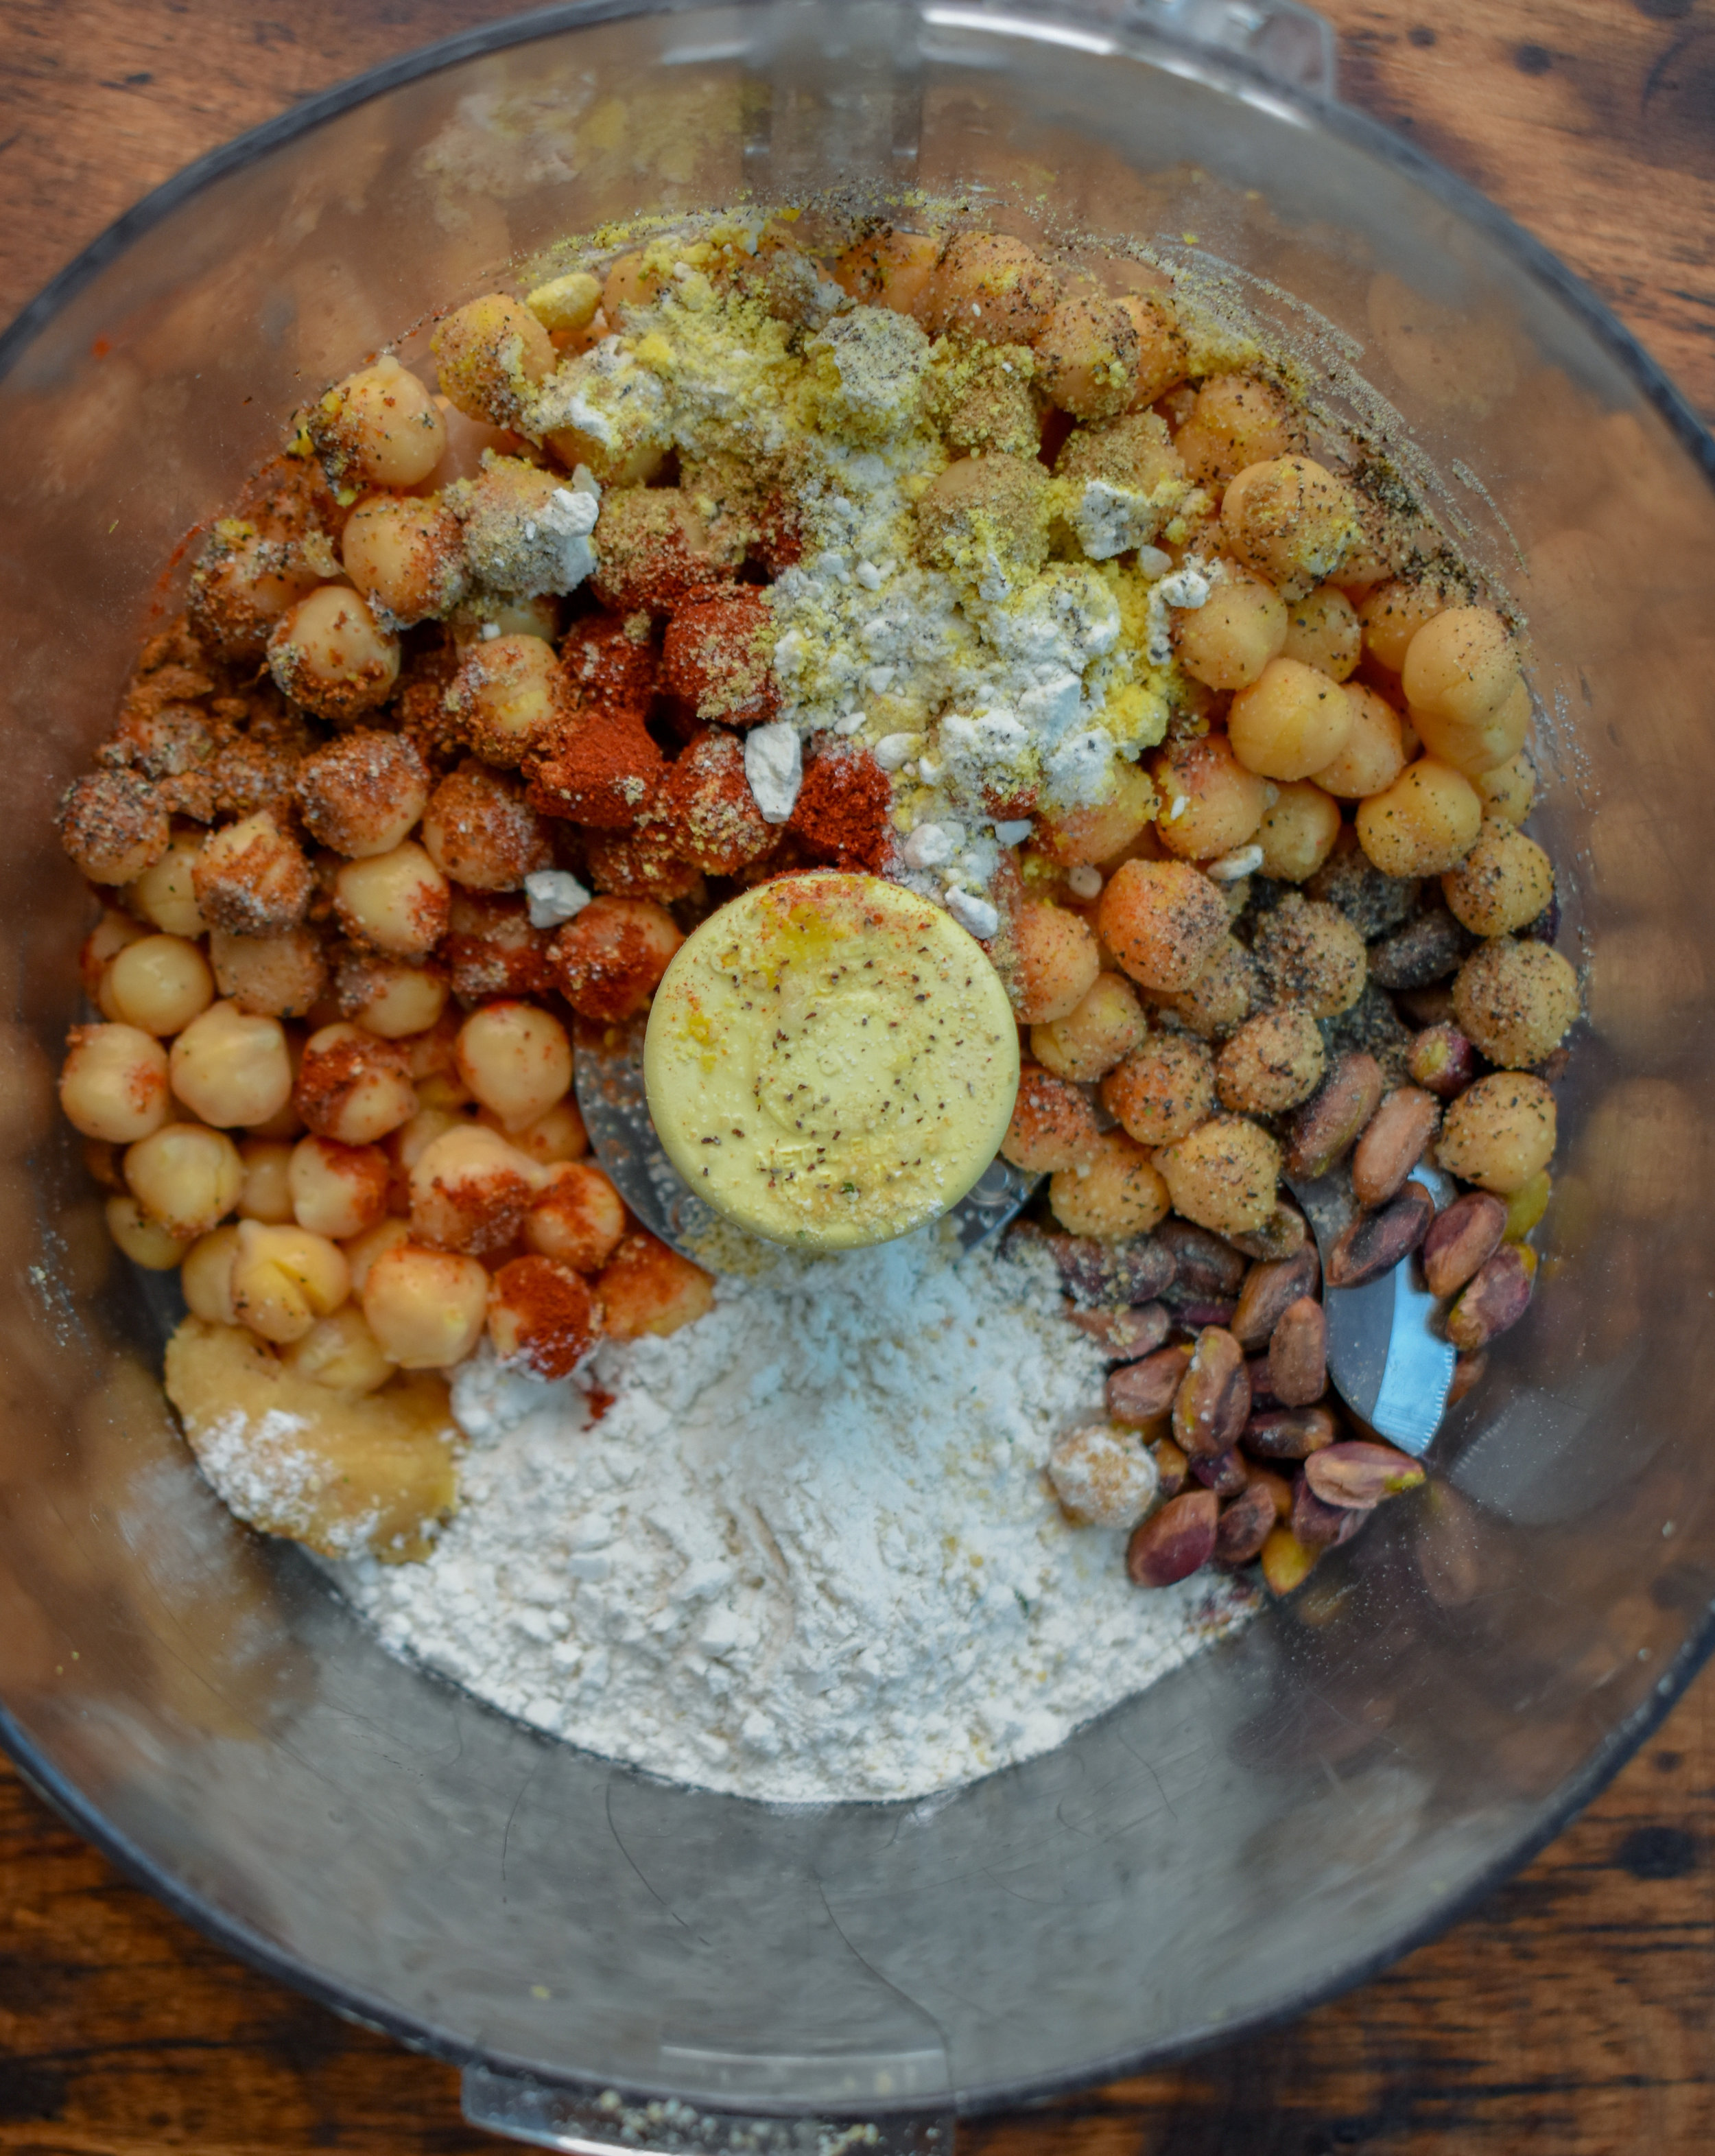 3.  To a food processor/high-speed blender add pistachios, chickpeas, chili powder, paprika, oregano, coriander, pepper, and salt. Pulse 10-15 times until the chickpeas are broken down into very small pieces.